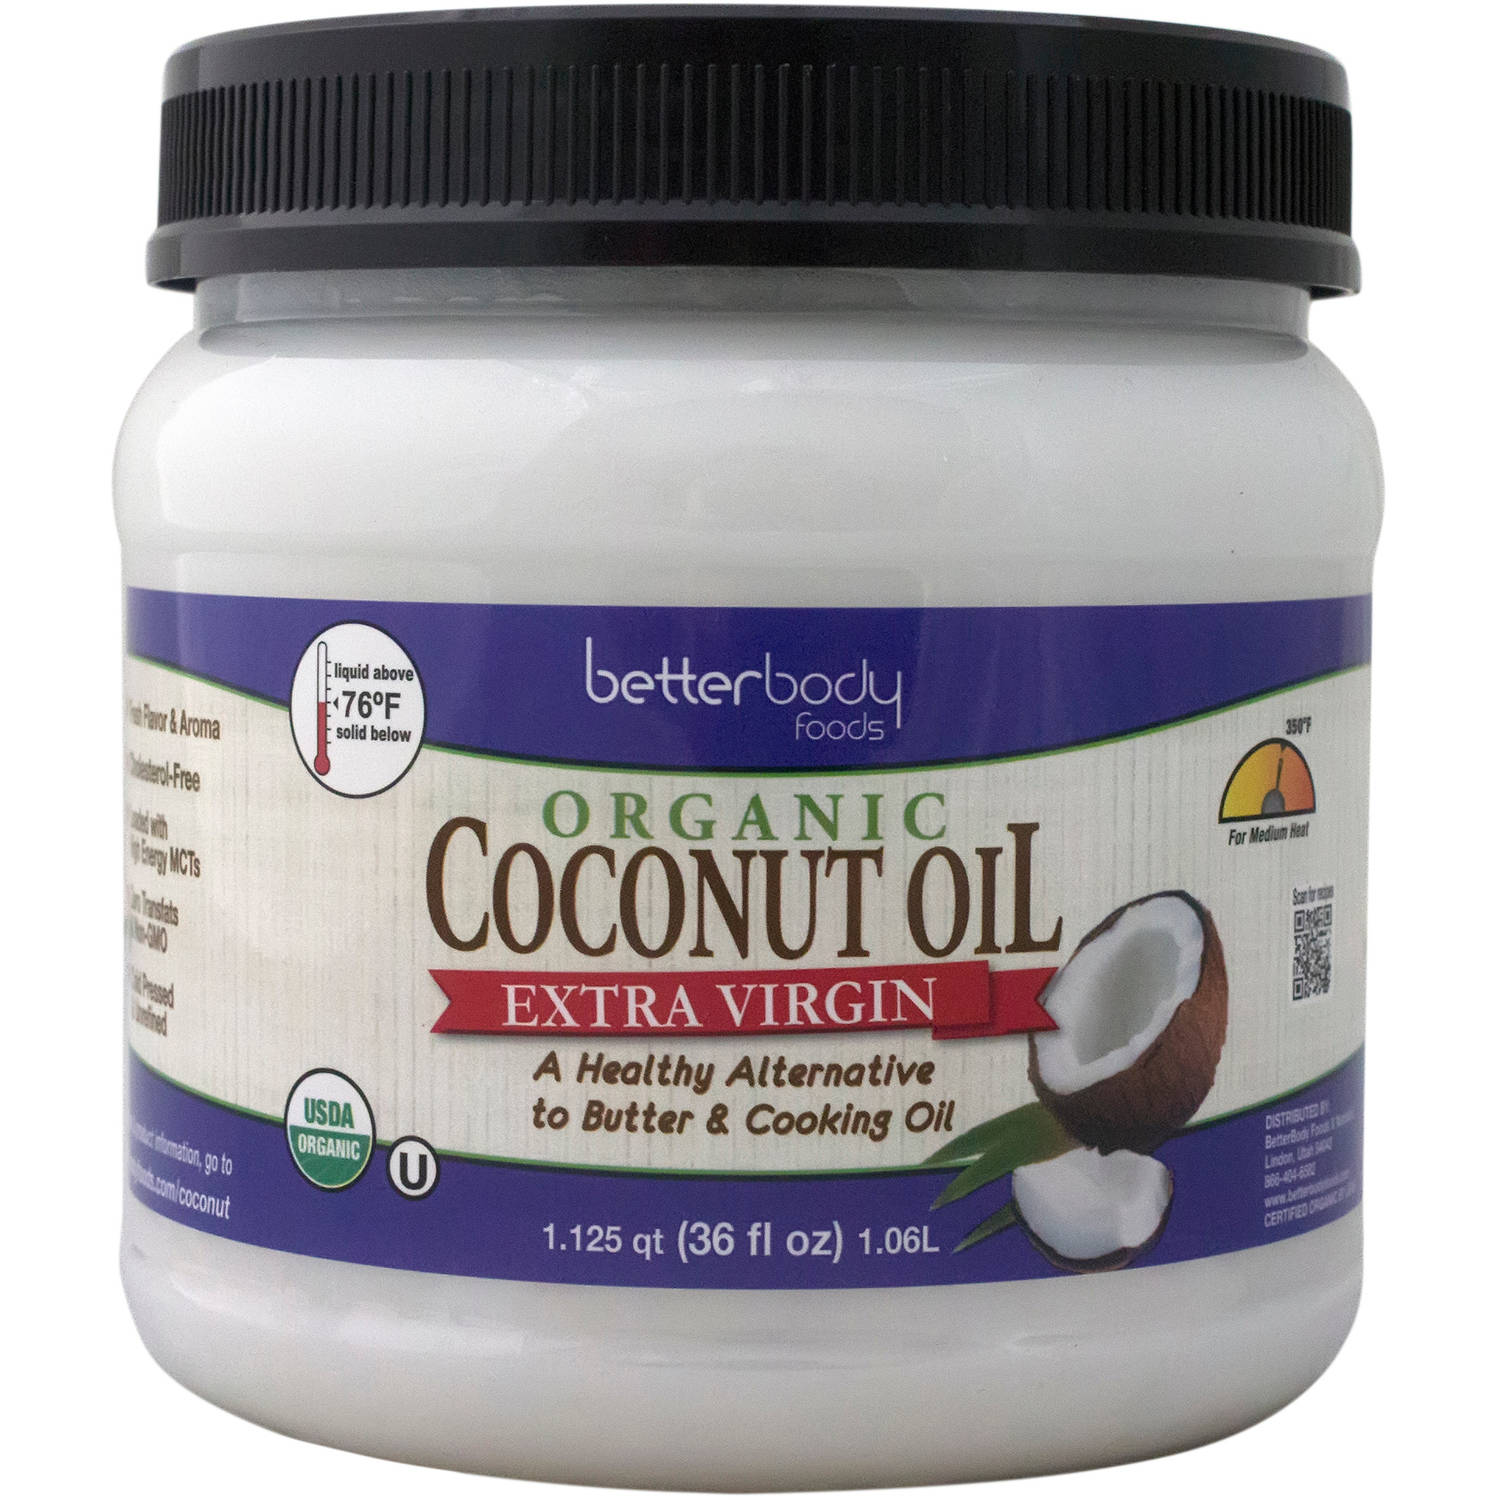 BetterBody Foods Extra Virgin Organic Coconut Oil, 36 fl oz